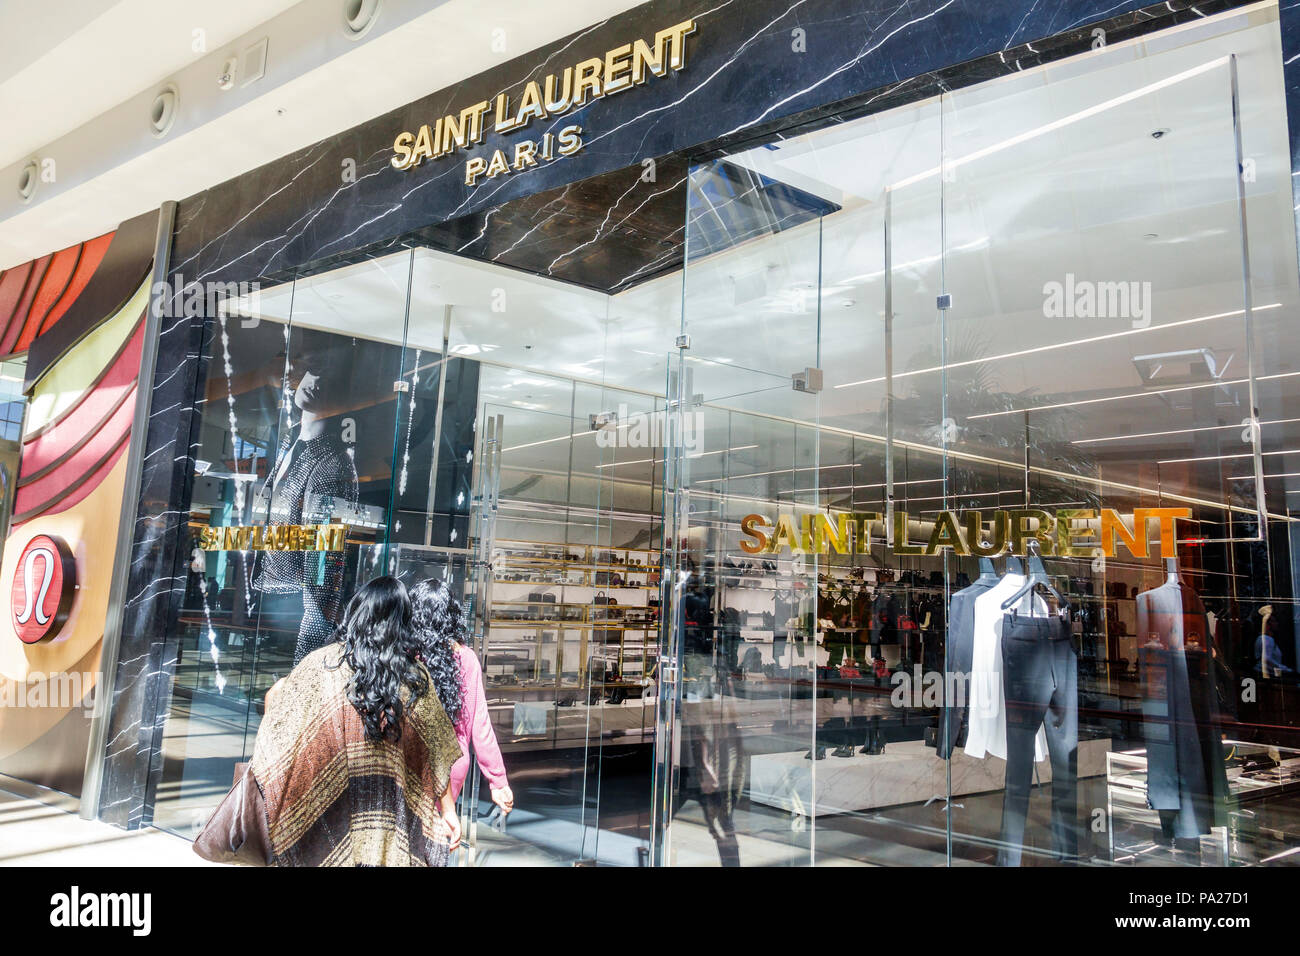 Orlando Florida The Mall at Millenia shopping Saint Laurent French designer upscale boutique store entrance window display interior - Stock Image